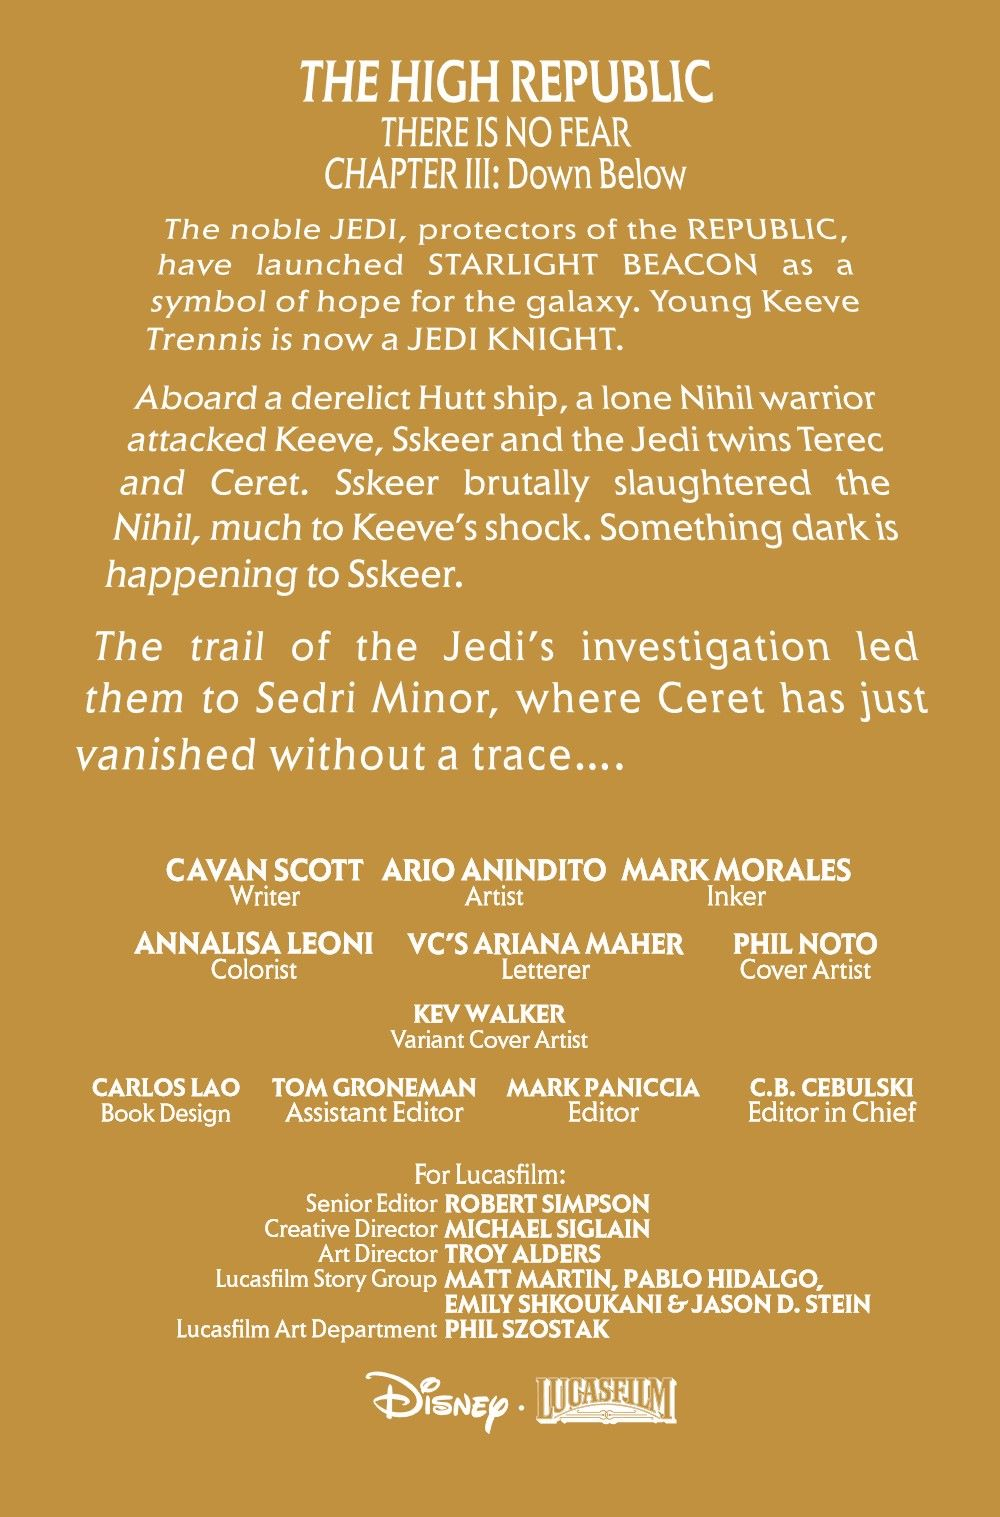 STWHIGHREP2020003_Preview-2 ComicList Previews: STAR WARS THE HIGH REPUBLIC #3